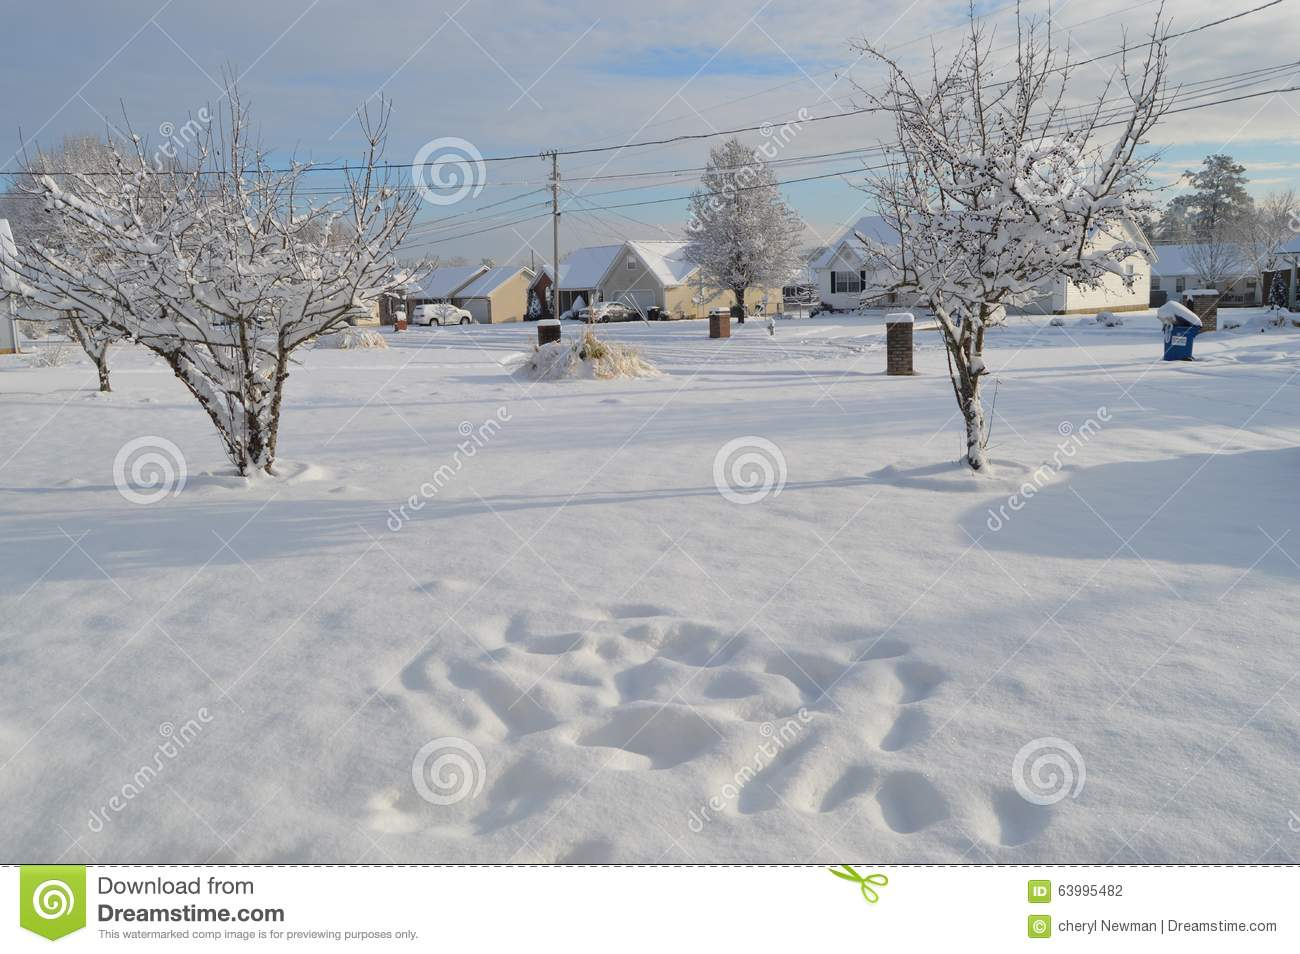 Snowy weather stock photo  Image of snowy, weather